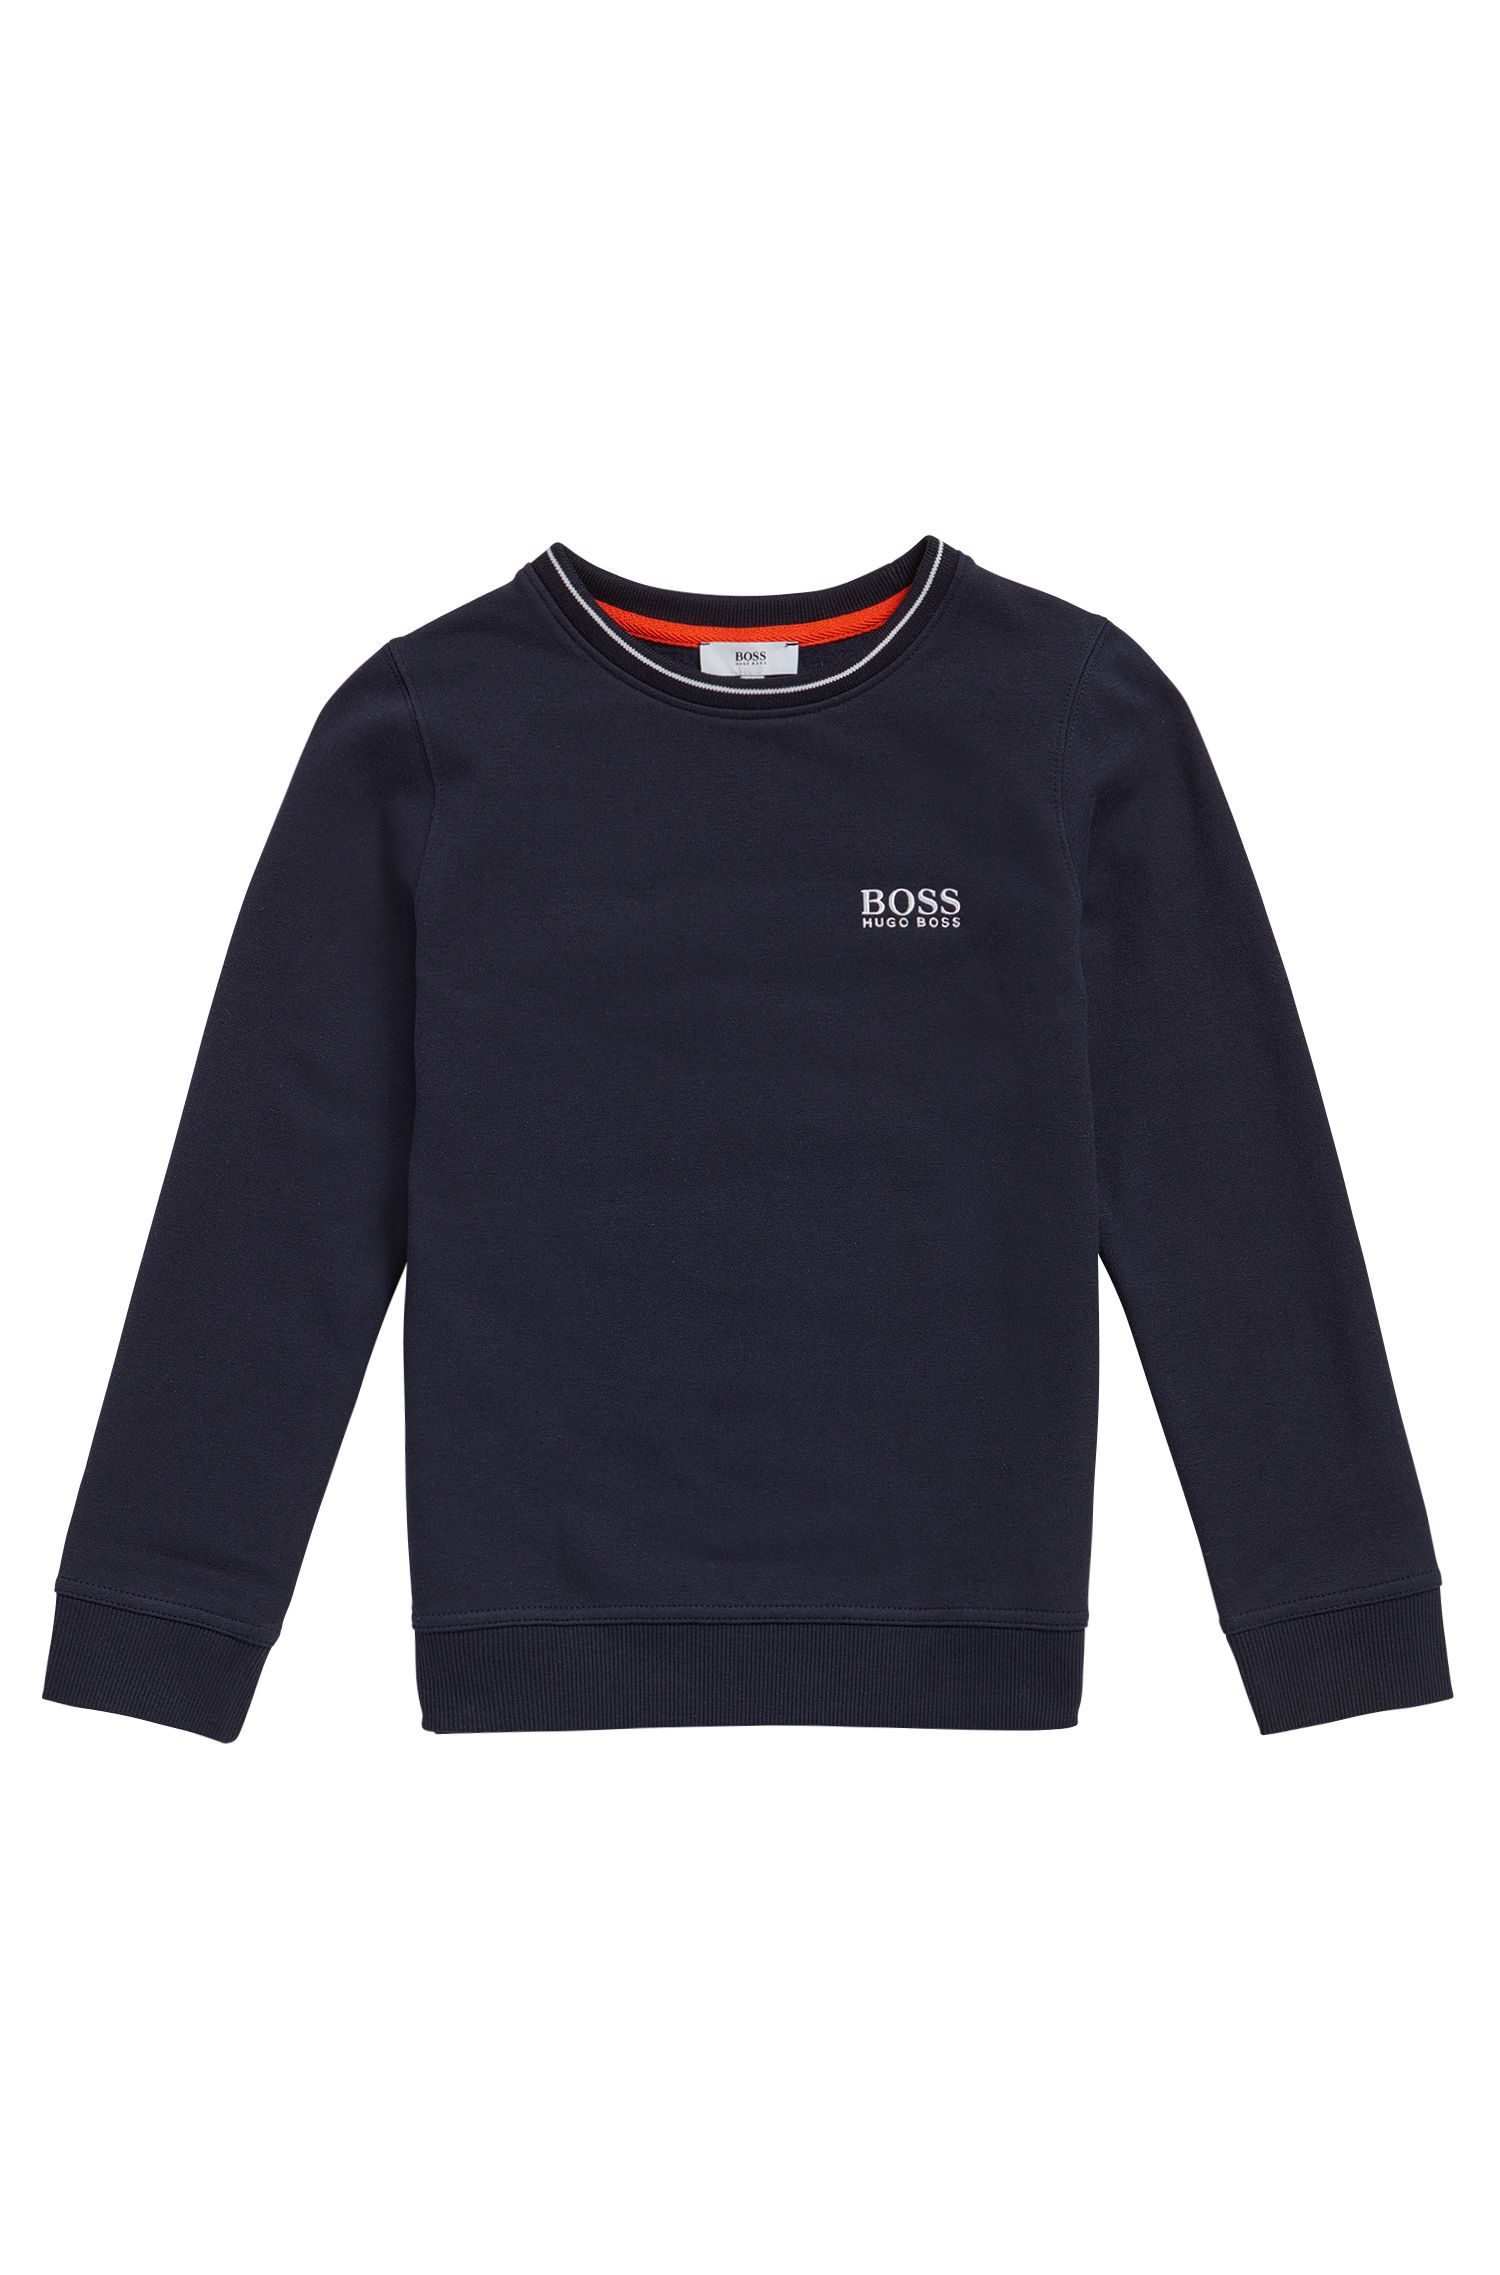 Kids' cotton sweatshirt with embroidered logo: 'J25985'